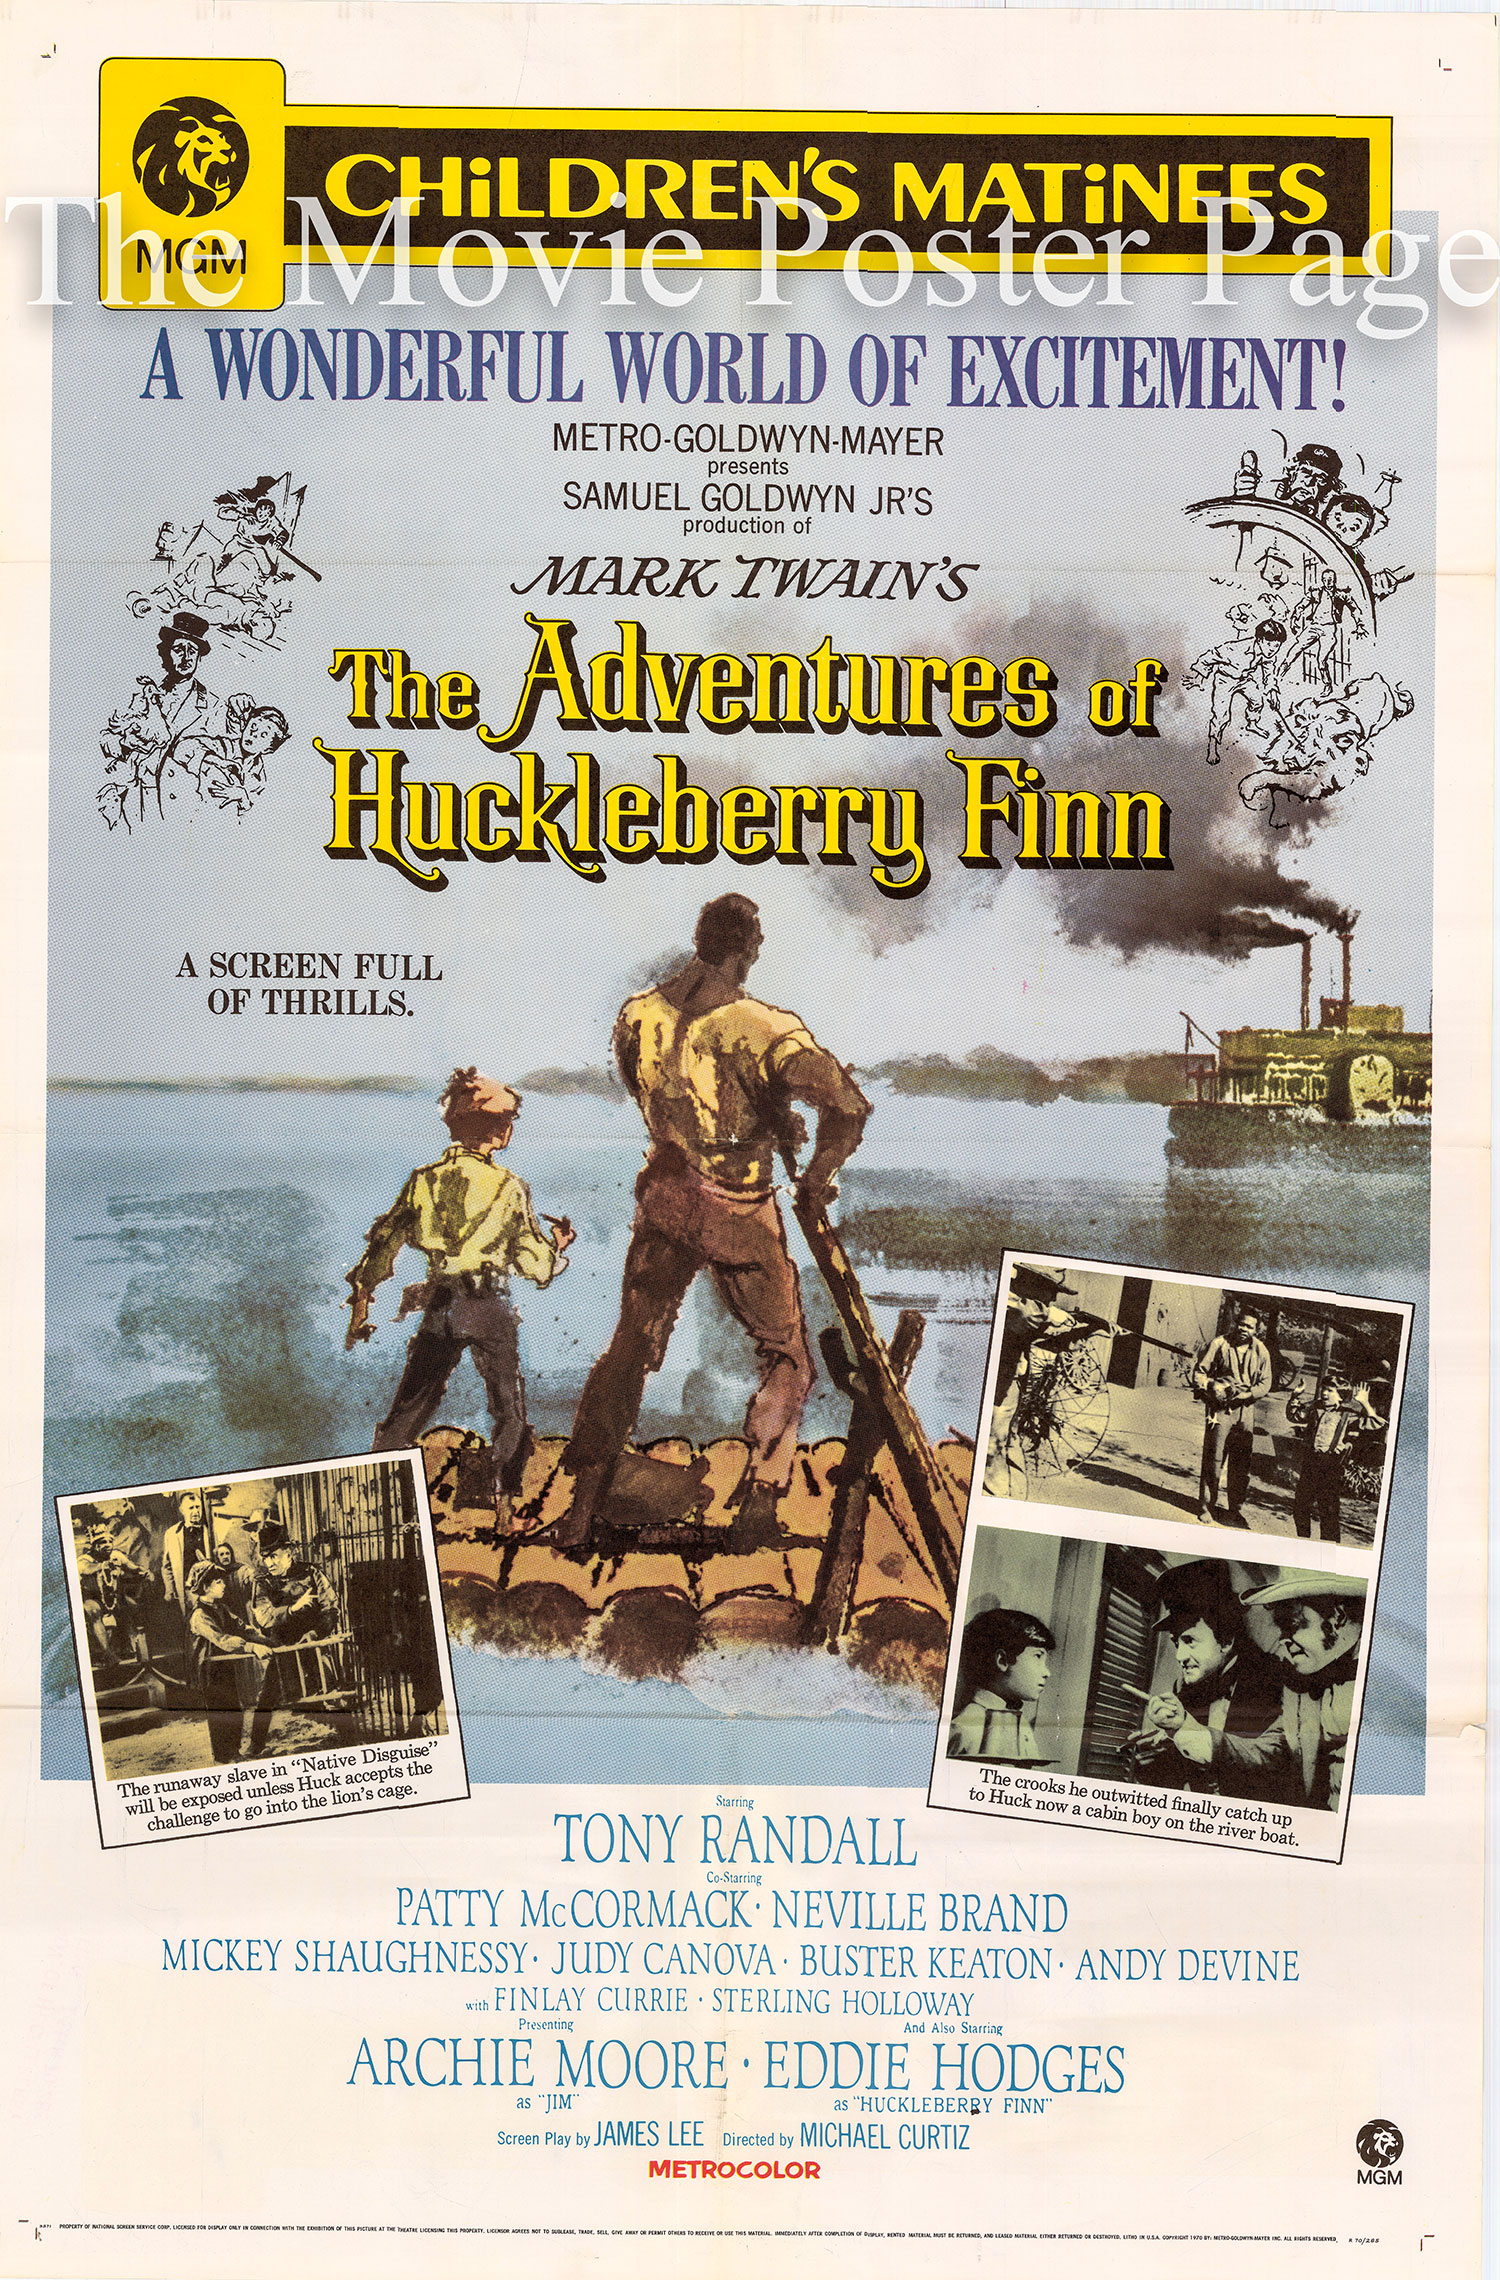 Pictured is a US one-sheet promotional poster for a 1970 rerelease of the 1960 Michael Curtiz film The Adventures of Huckleberry Finn starring Eddie Hodgies as Huckleberry Finn.